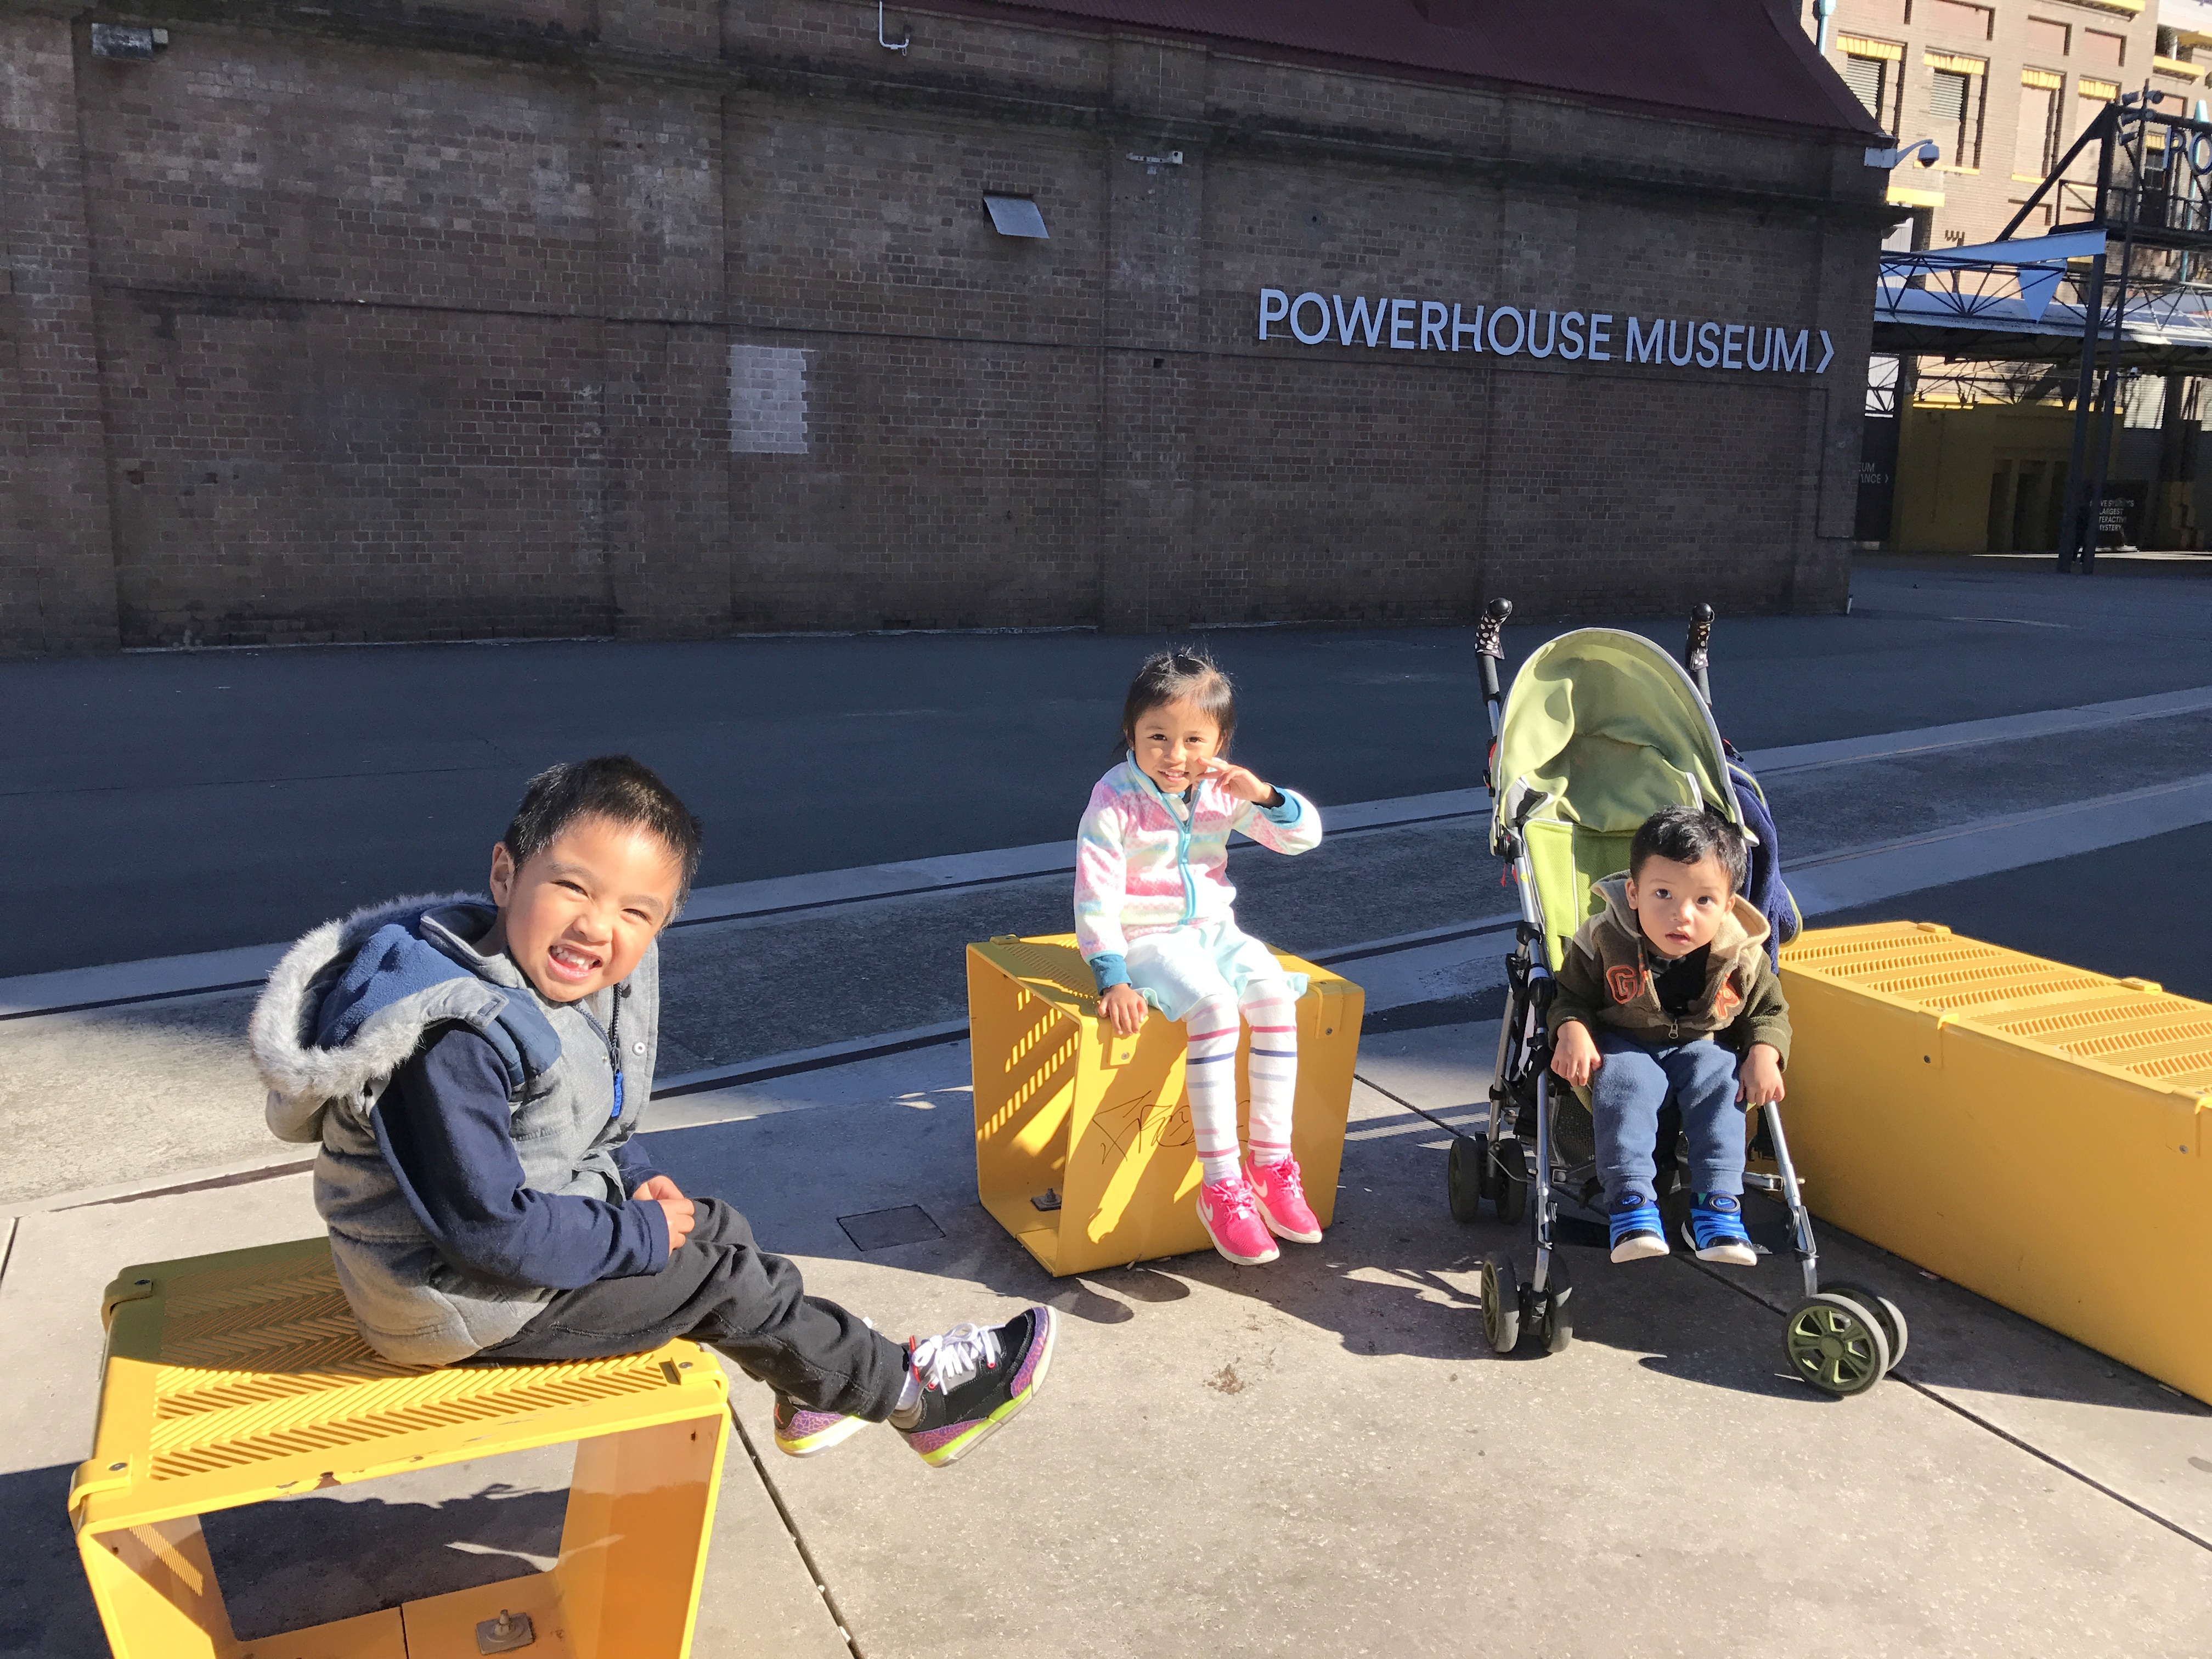 Powerhouse Museum New South Wales, 2017